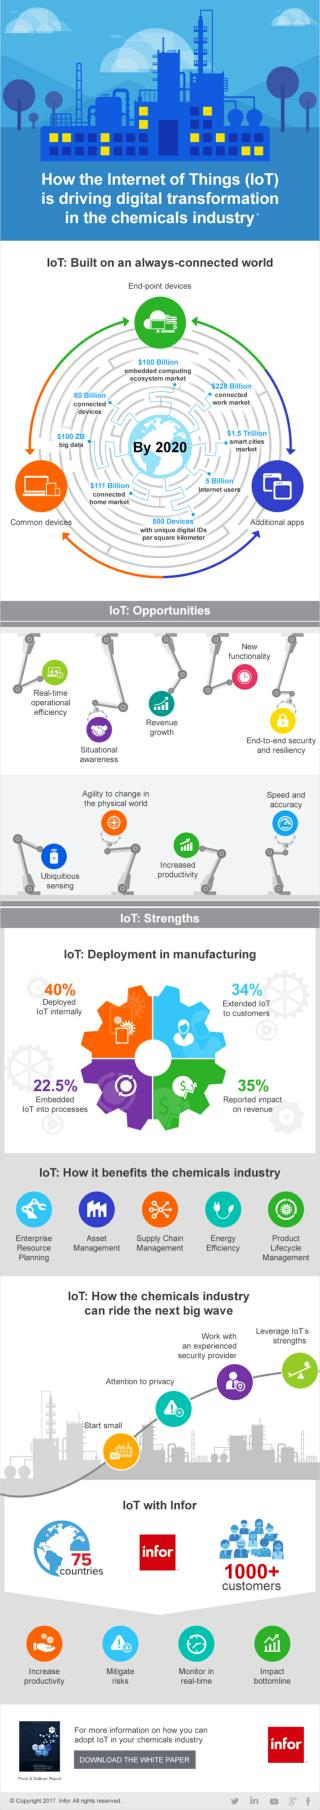 Infographic on How Digital Transformation is Driven by IoT in The Chemicals Industry